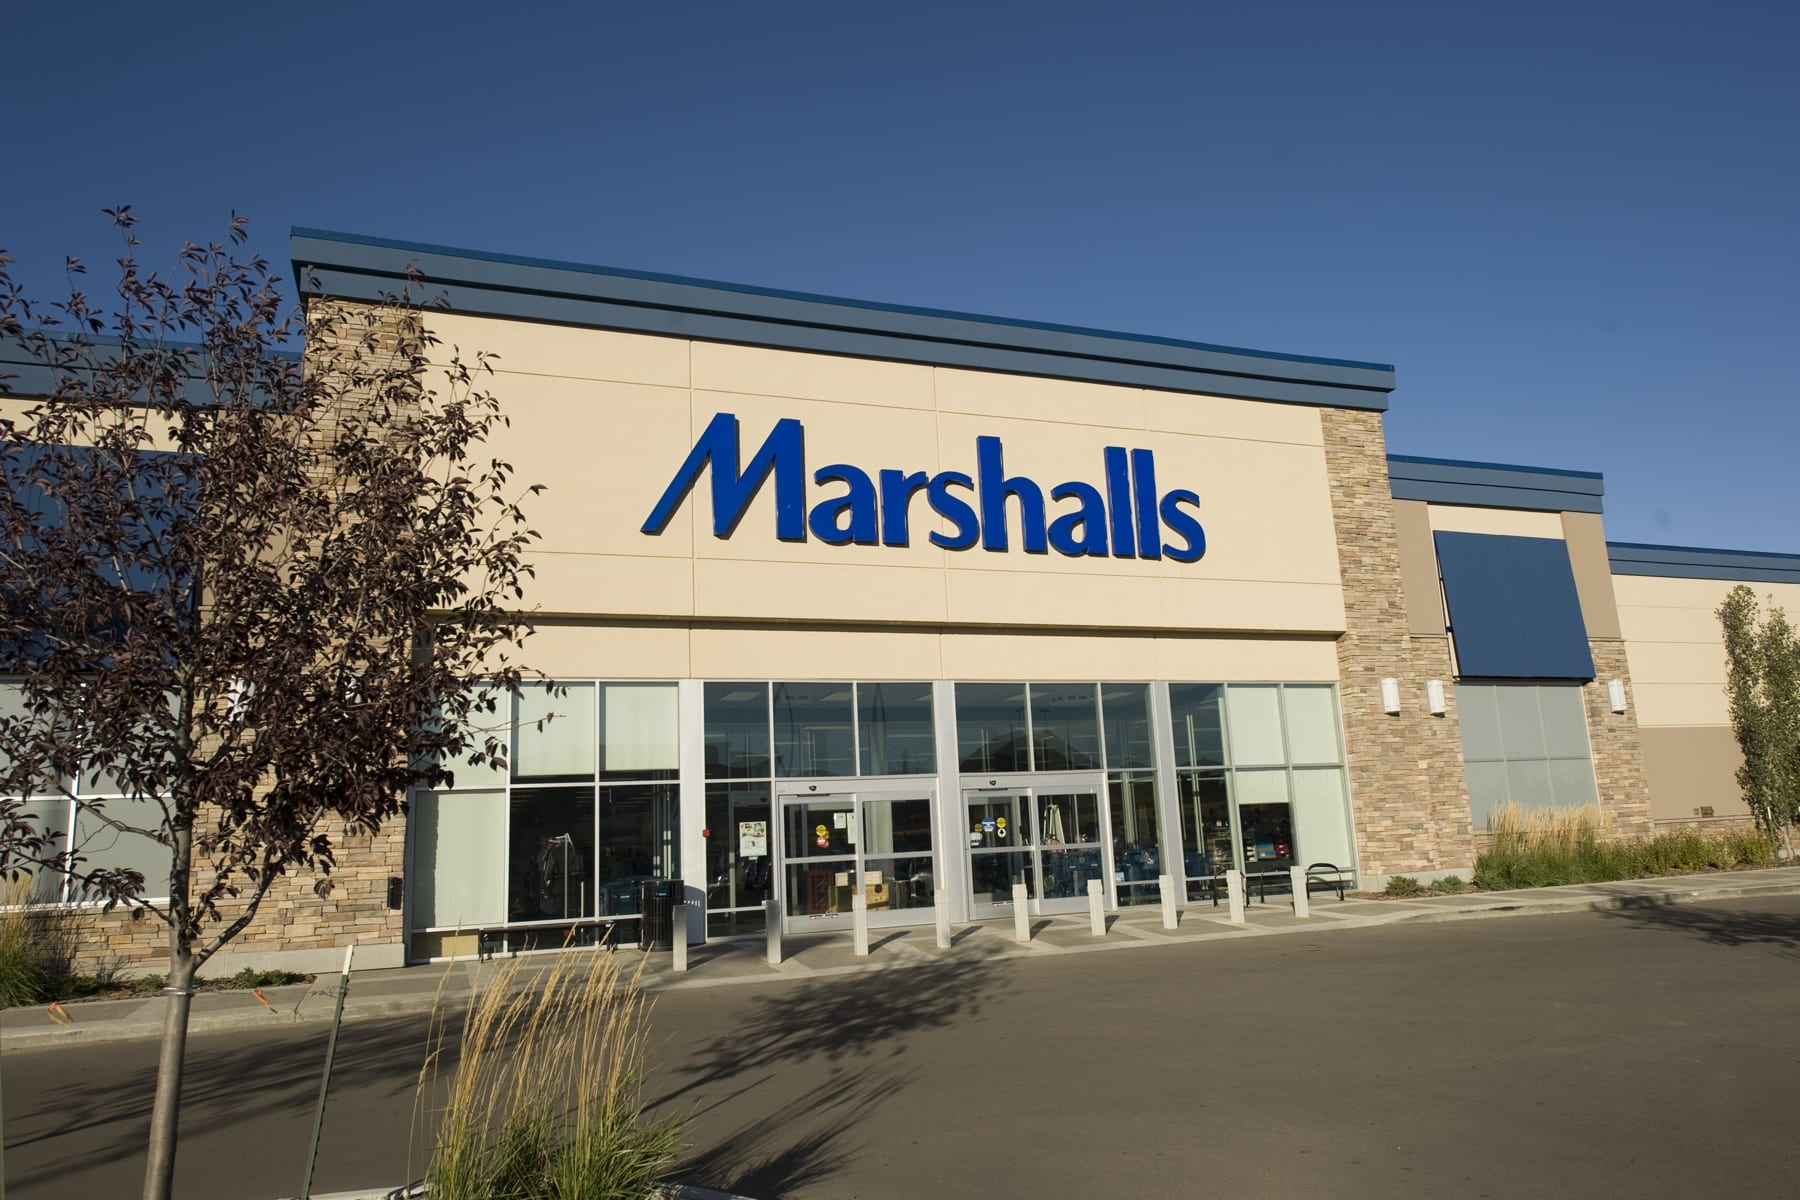 MARSHALLS clothing has long been very popular. This is supported by a network of shops throughout the US, which has every year a large turnover, as well as several MARSHALLS online stores, where you can find goods for reasonable prices.